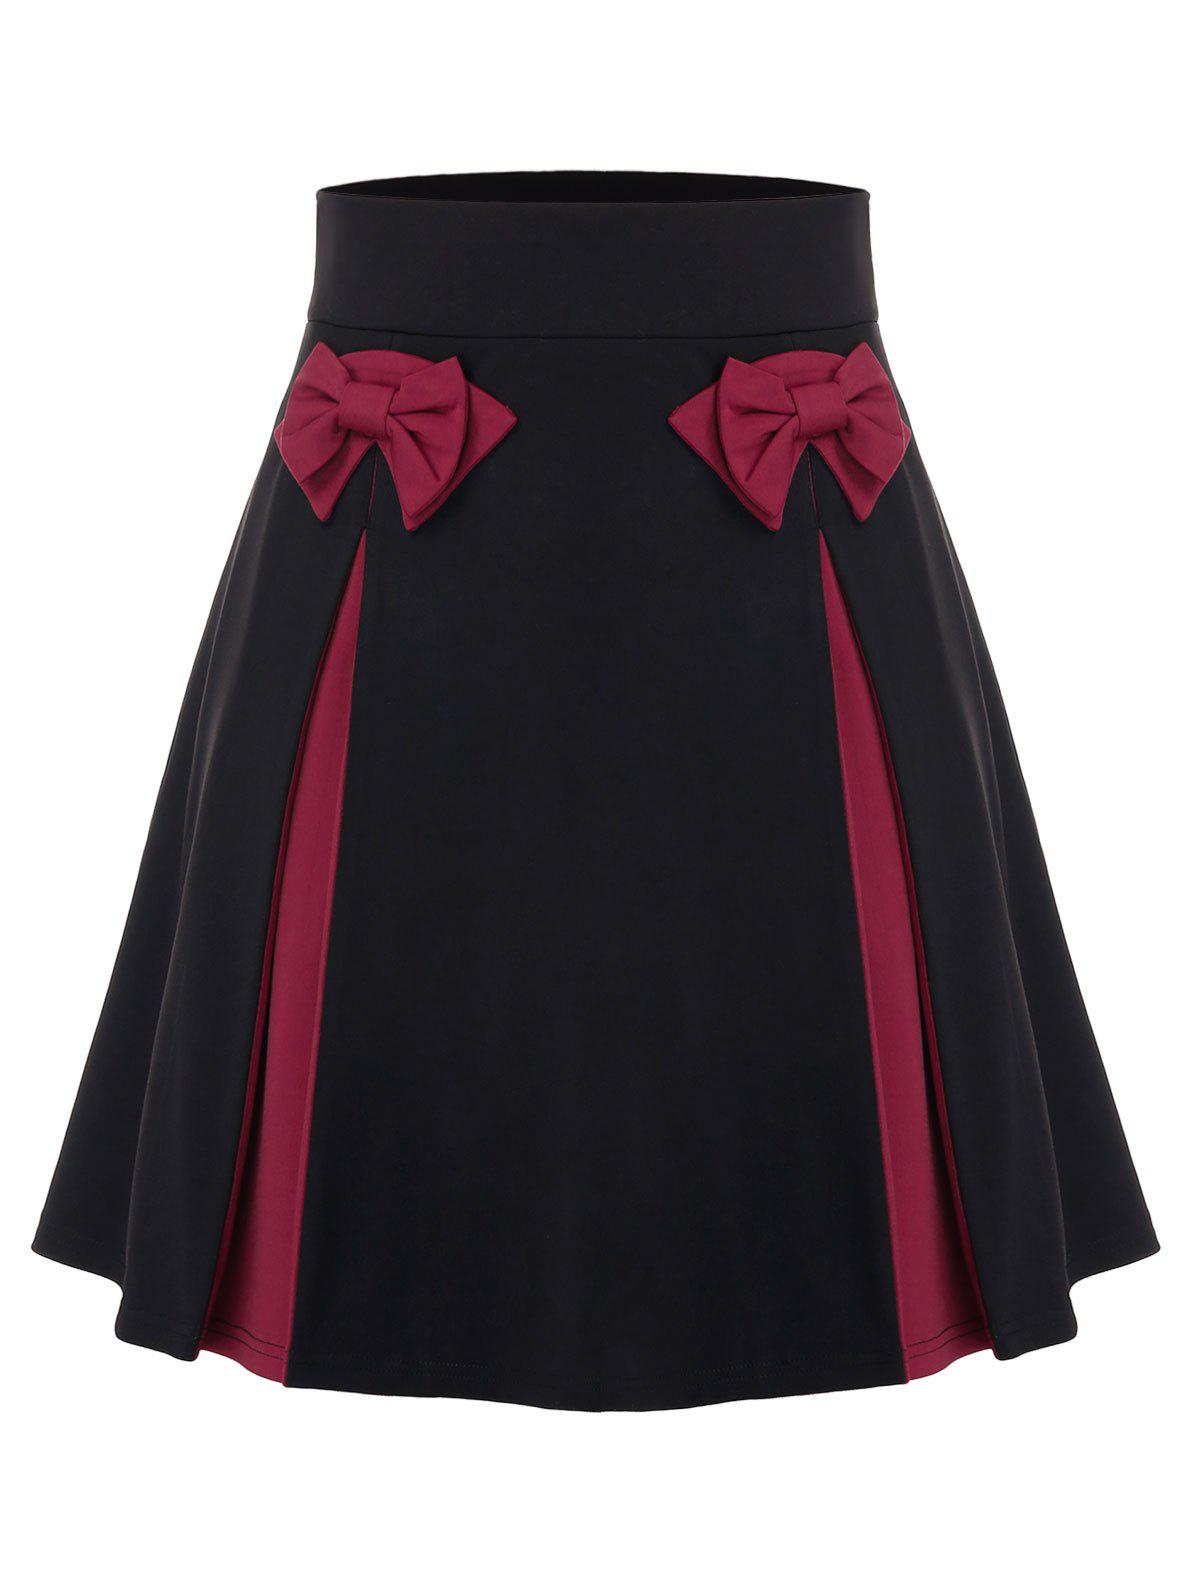 Plus Size Bowknot Two Tone Skirt - BLACK 4X